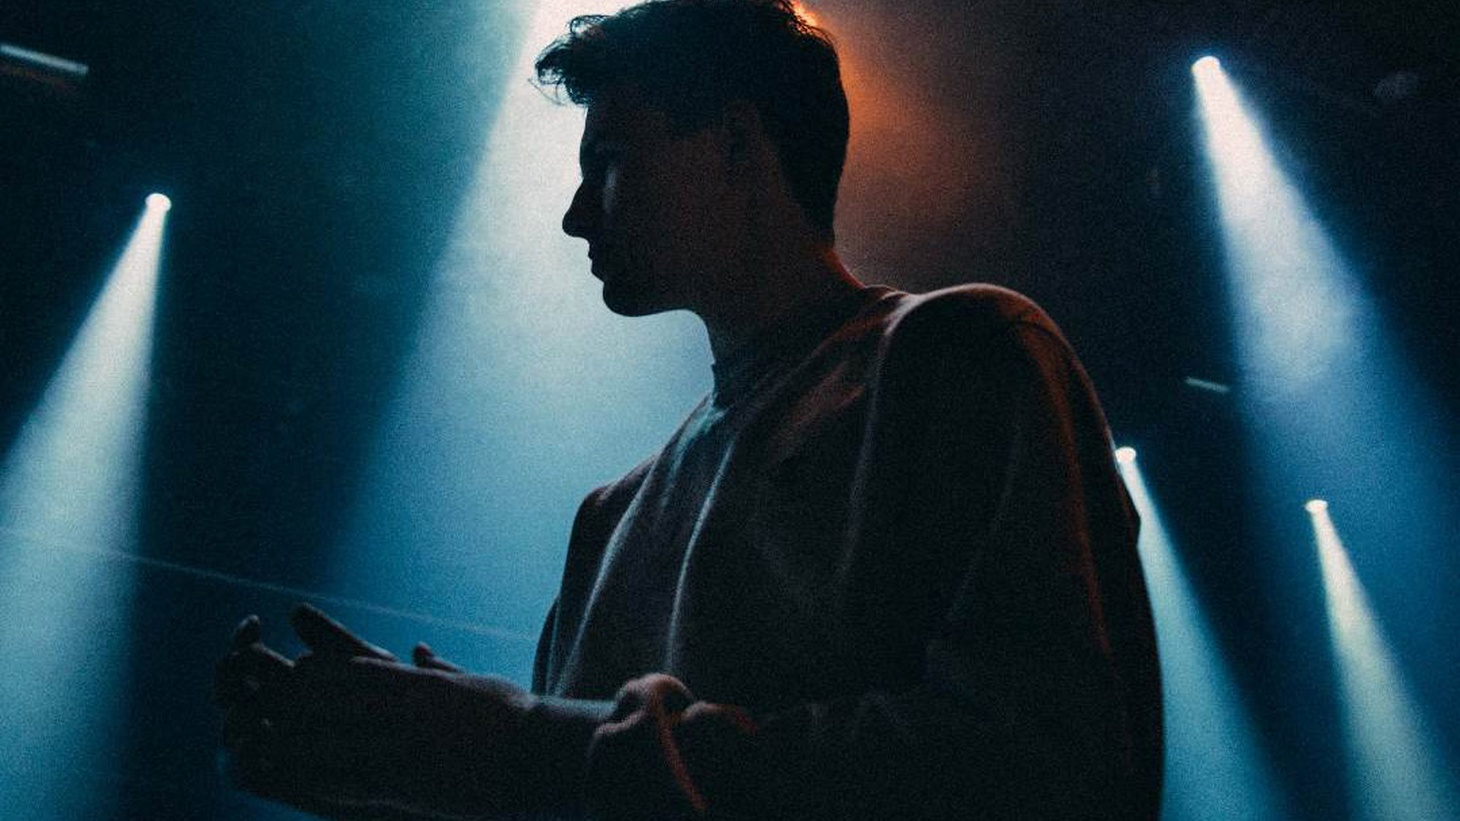 We've been patiently waiting for break-out French artist Petit Biscuit's debut album for a while now, and we look forward to it dropping in November for his 18th birthday.